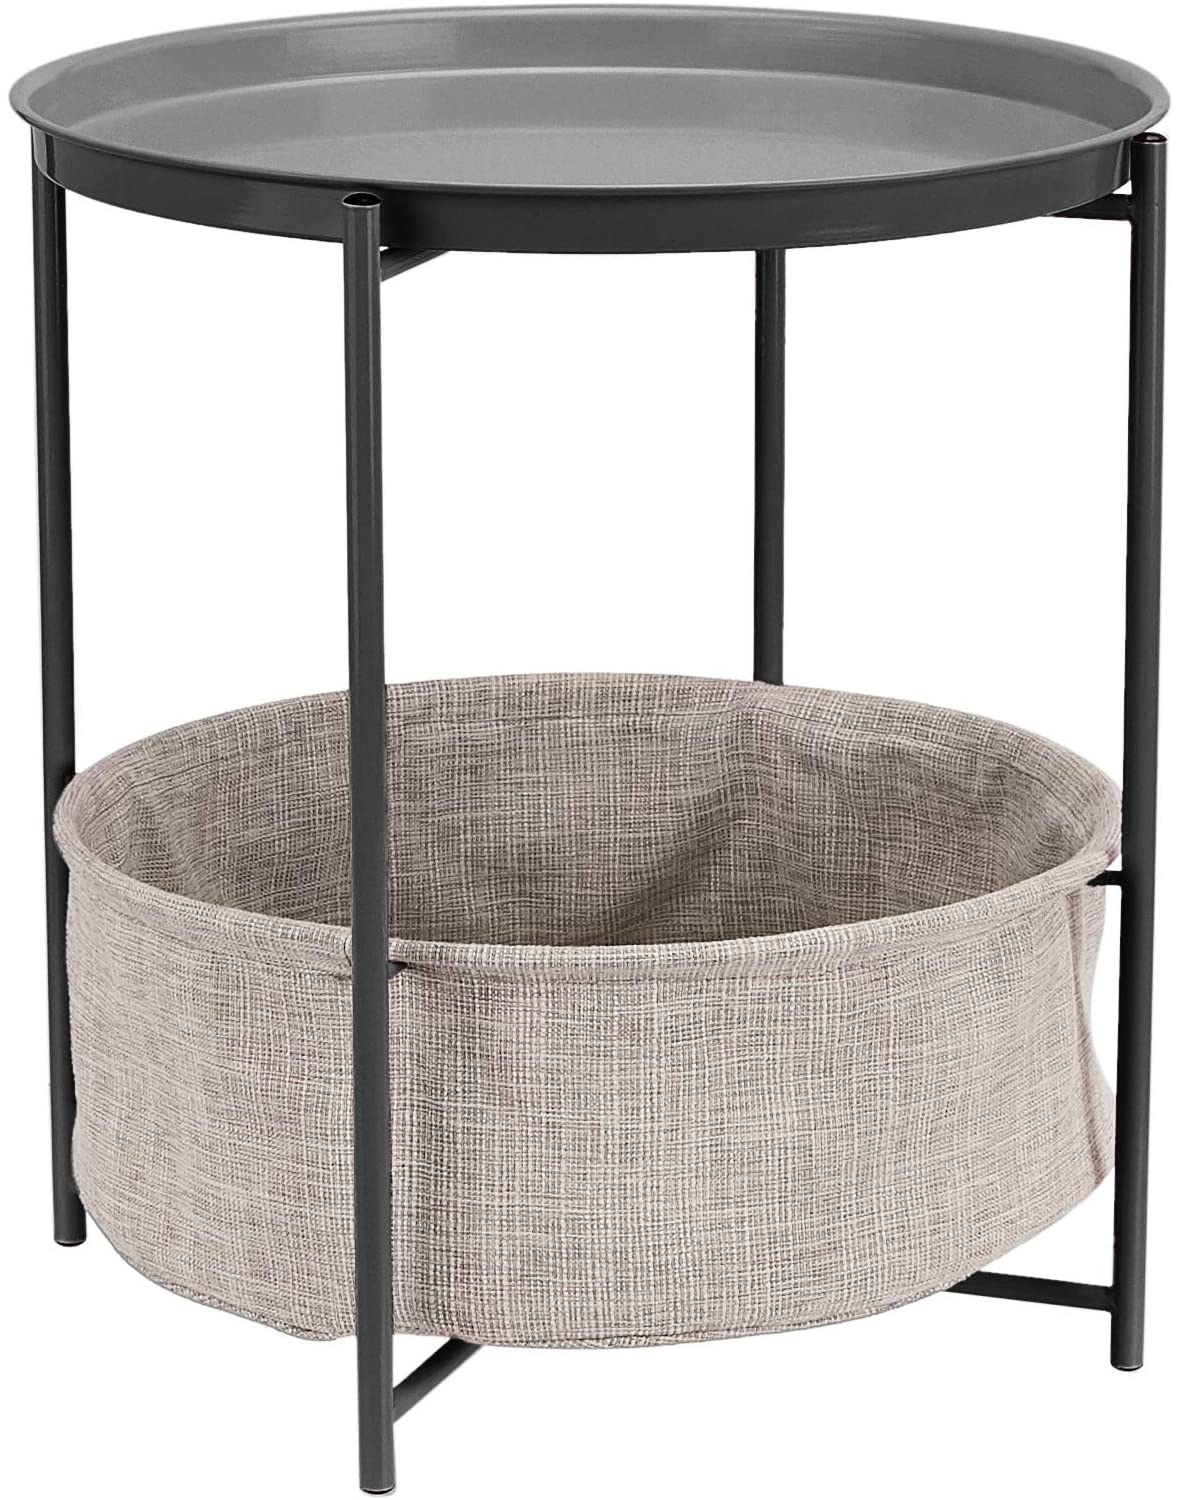 AmazonBasics Round Storage End Table - Charcoal with Heather Grey Fabric